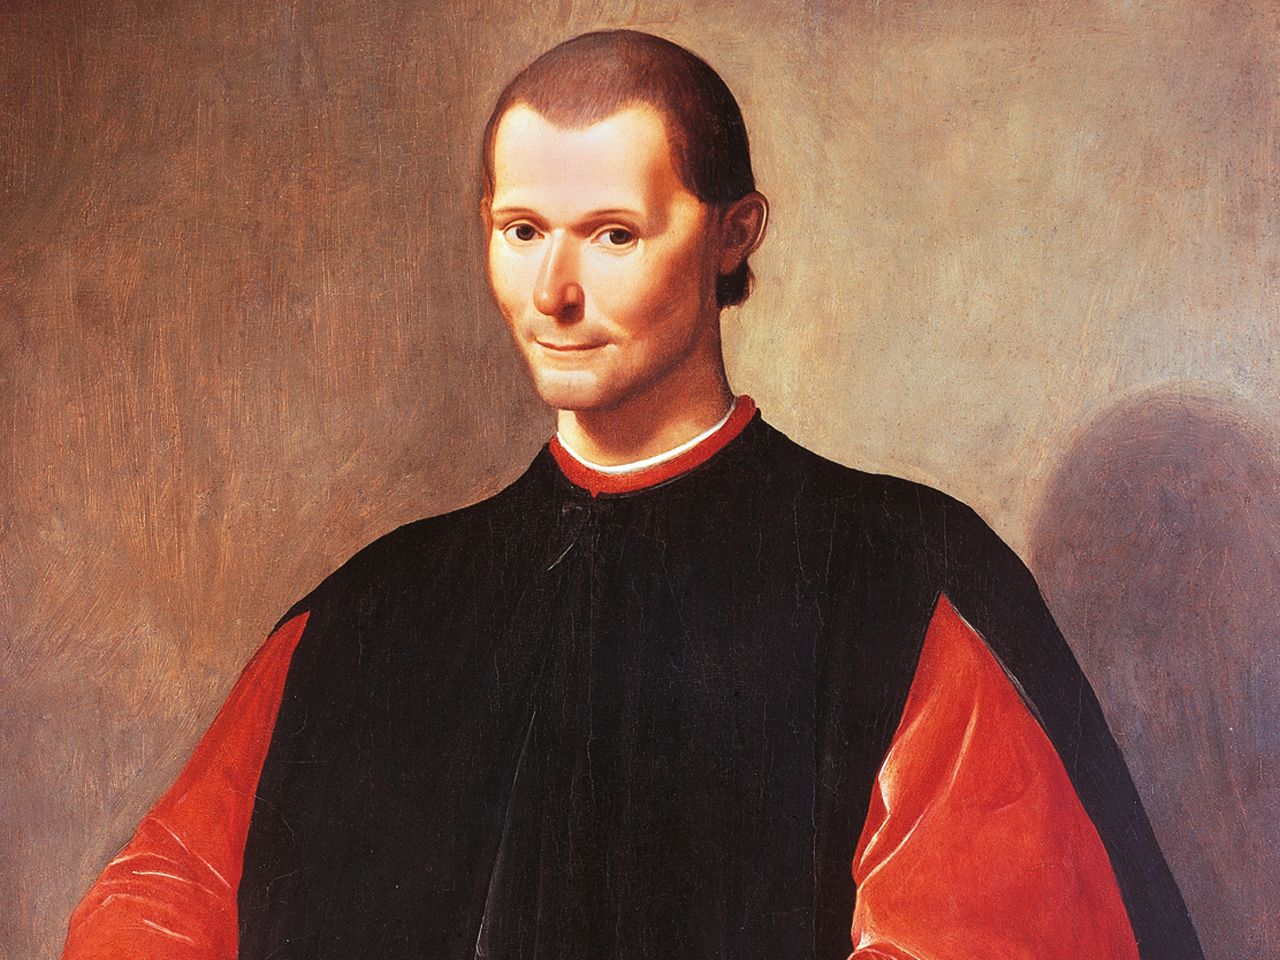 Machiavelli For Moms Do The Ends Justify The Means Niccolo Machiavelli Machiavelli Quotes Historical Quotes